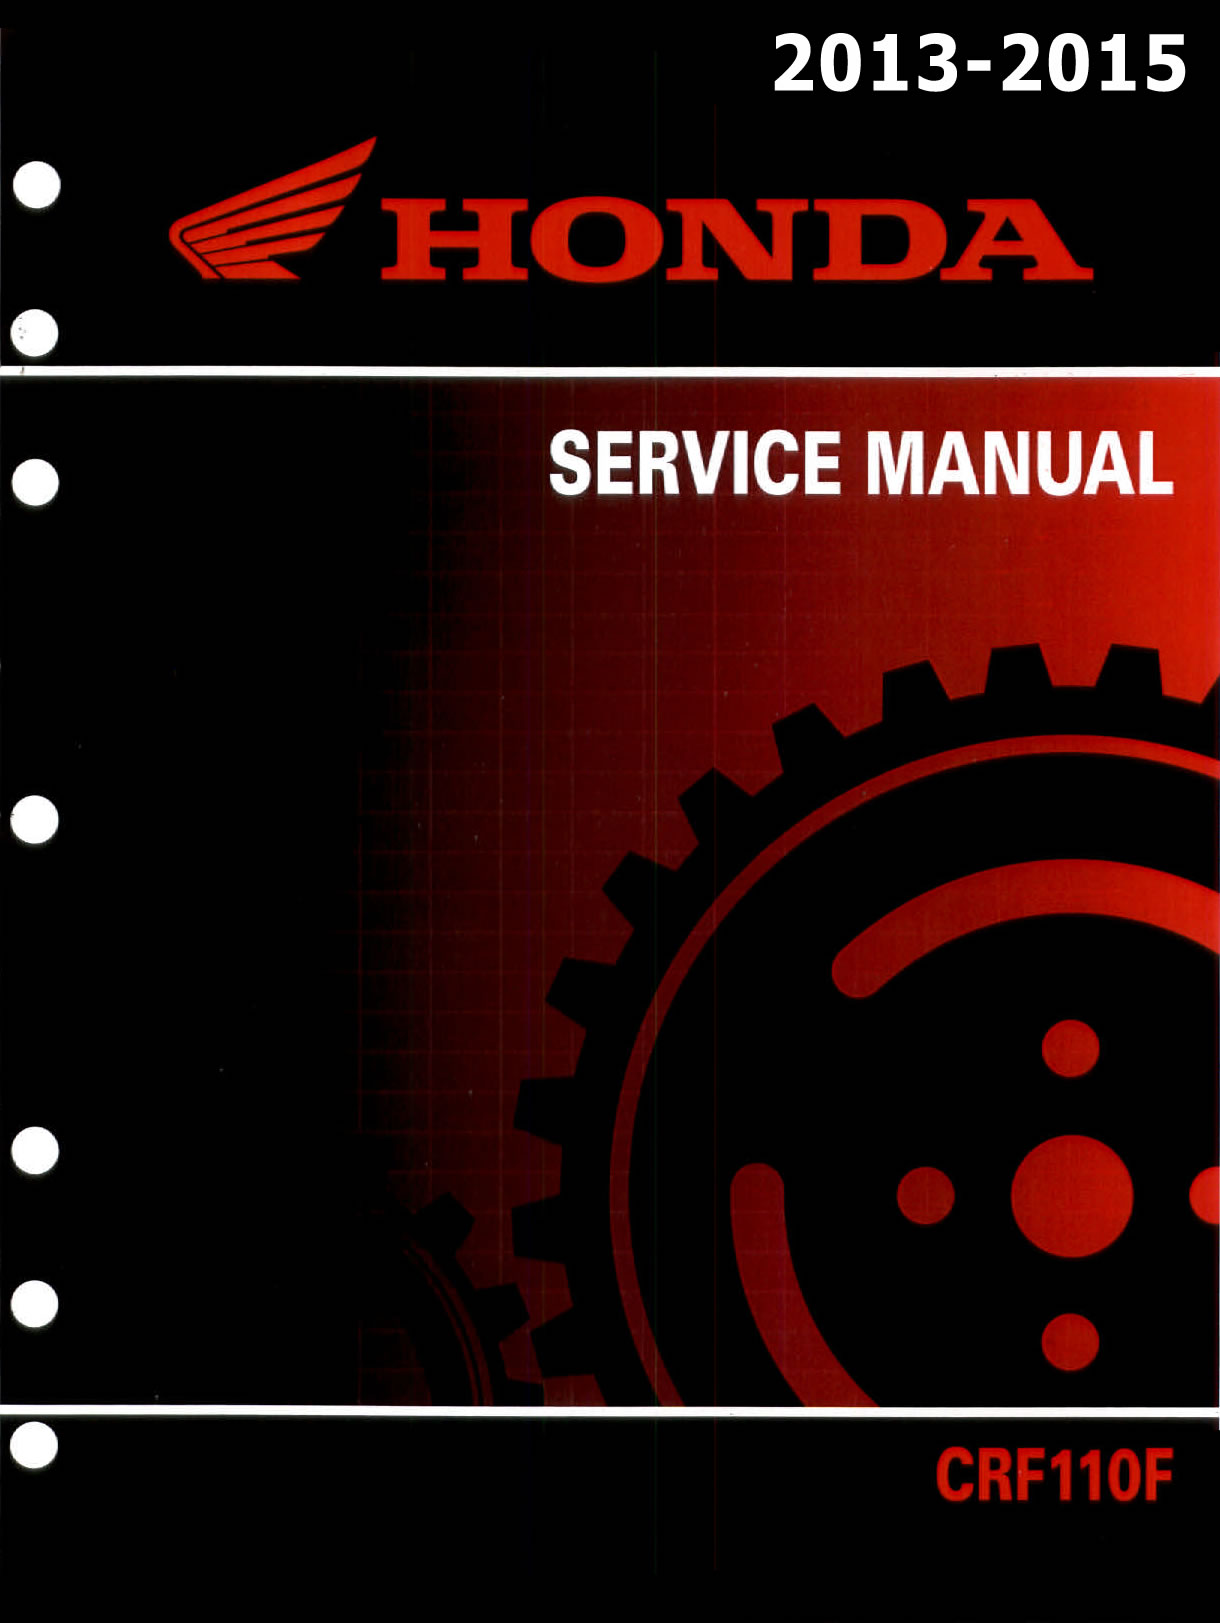 Workshop Manual for Honda CRF110F (2013-2015)